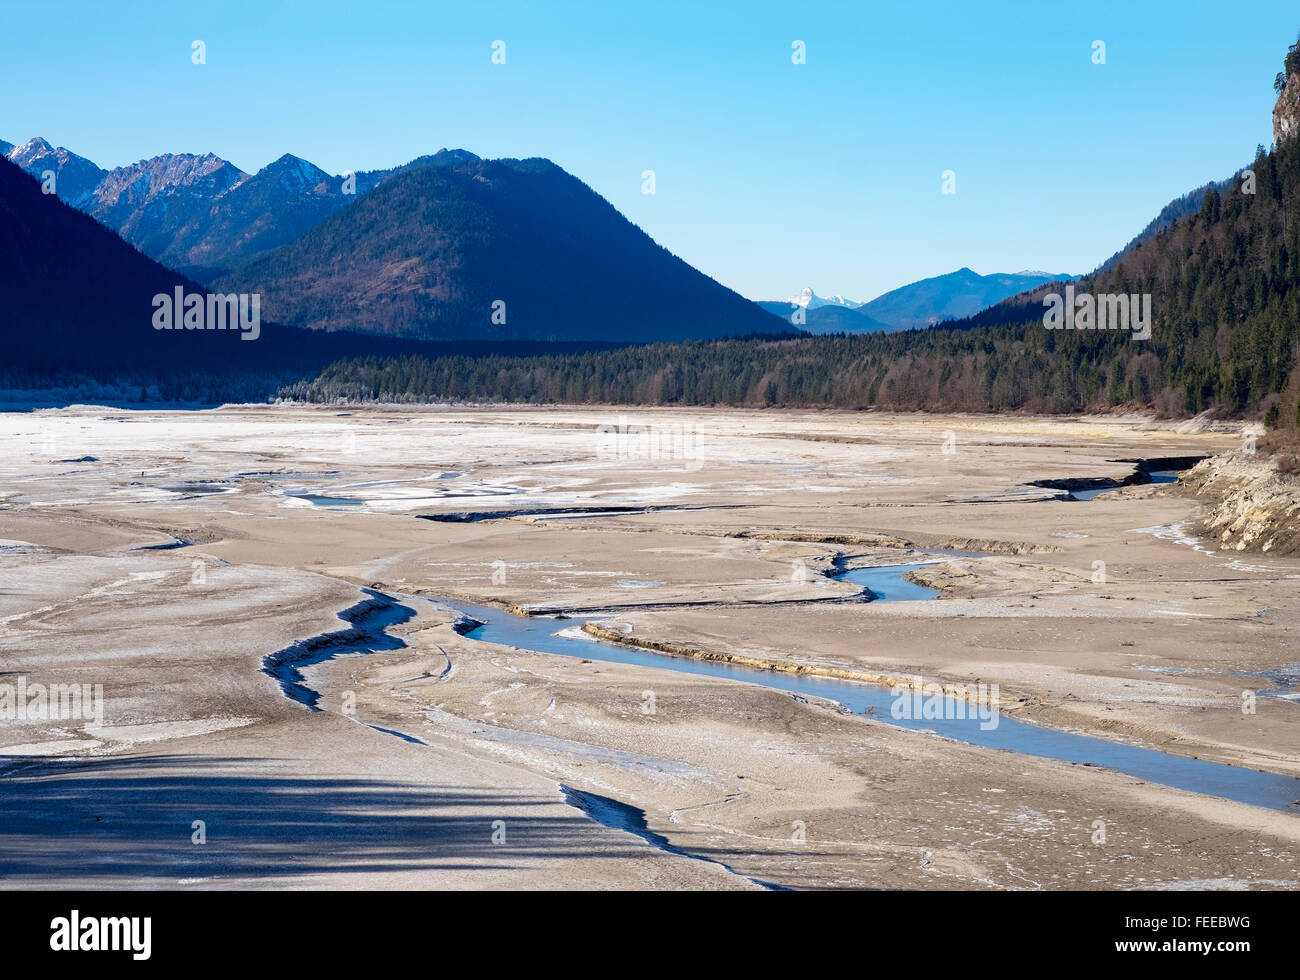 Isar river in the drained Sylvenstein Reservoir, Lenggries, Isarwinkel, Upper Bavaria, Bavaria, Germany - Stock Image